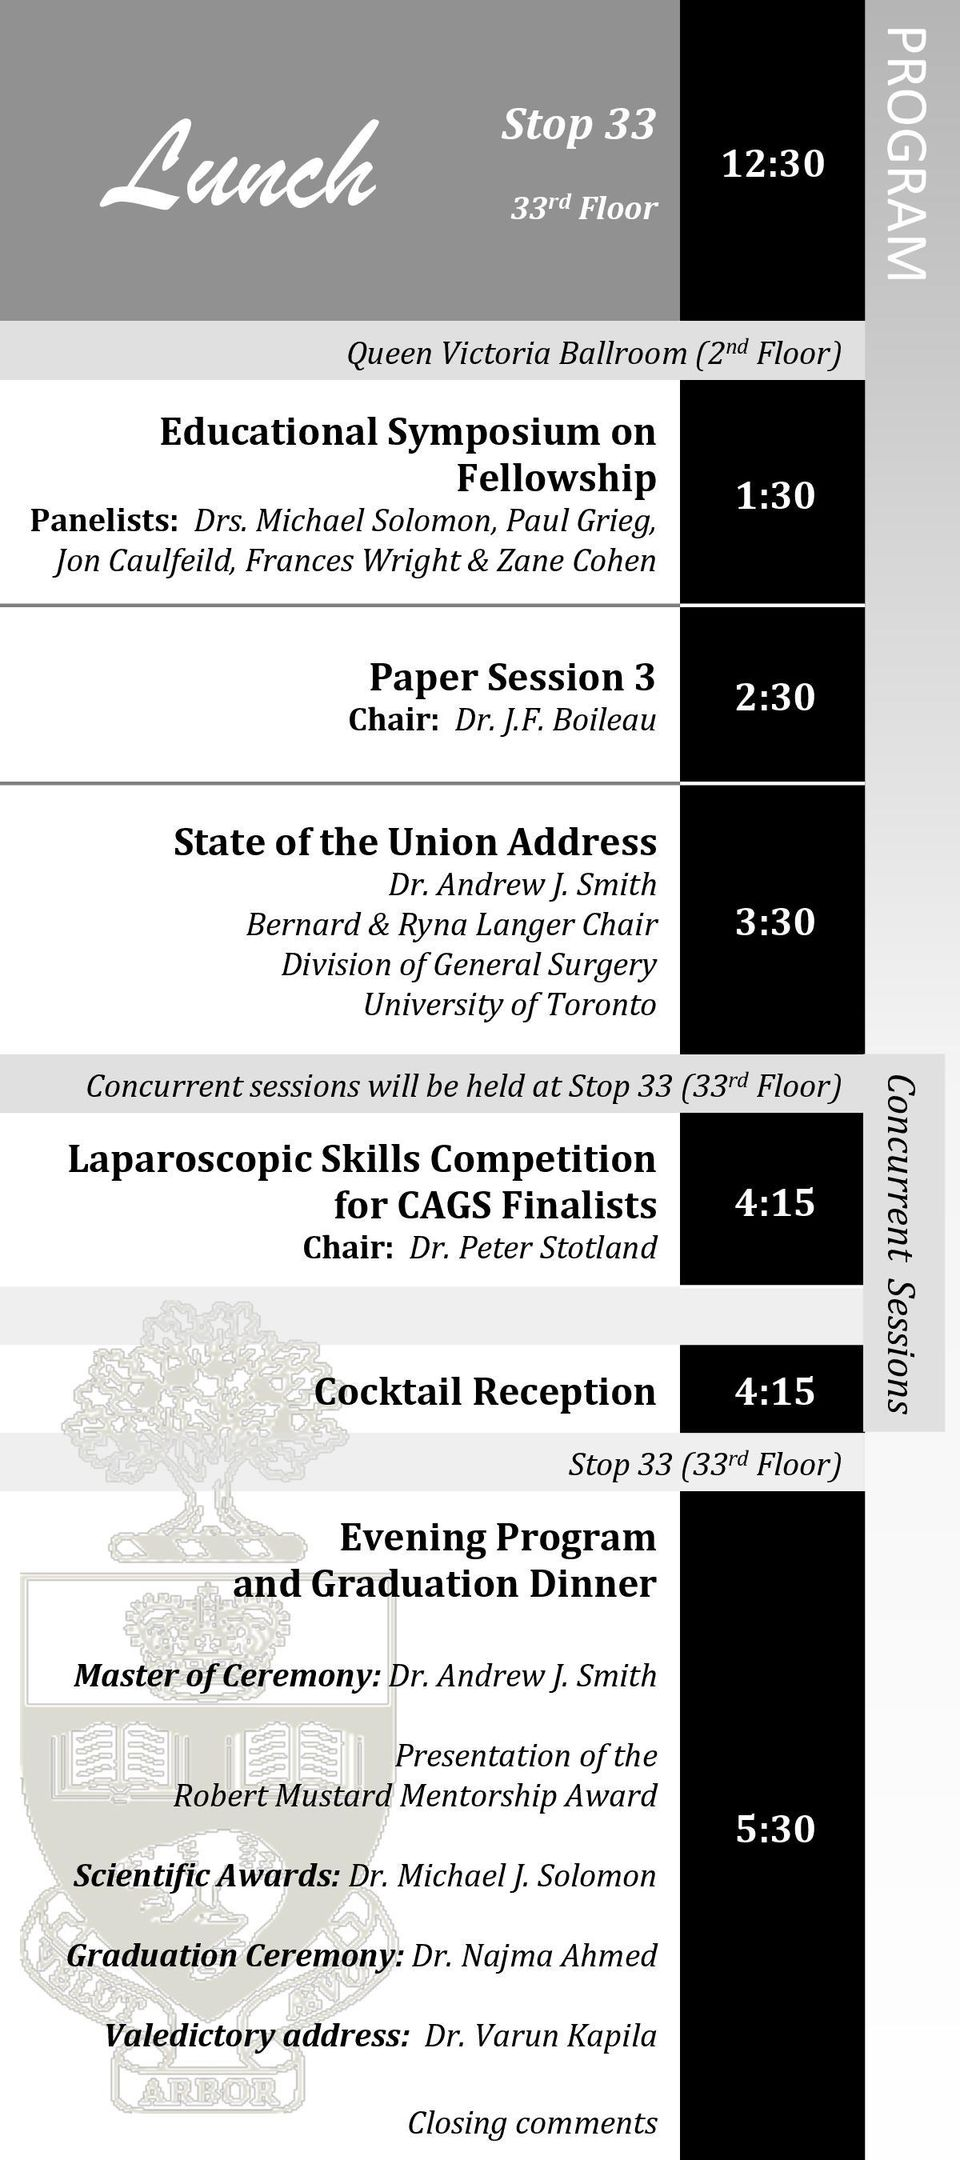 Smith Bernard & Ryna Langer Chair Division of General Surgery University of Toronto 3:30 Concurrent sessions will be held at Stop 33 (33 rd Floor) Laparoscopic Skills Competition for CAGS Finalists